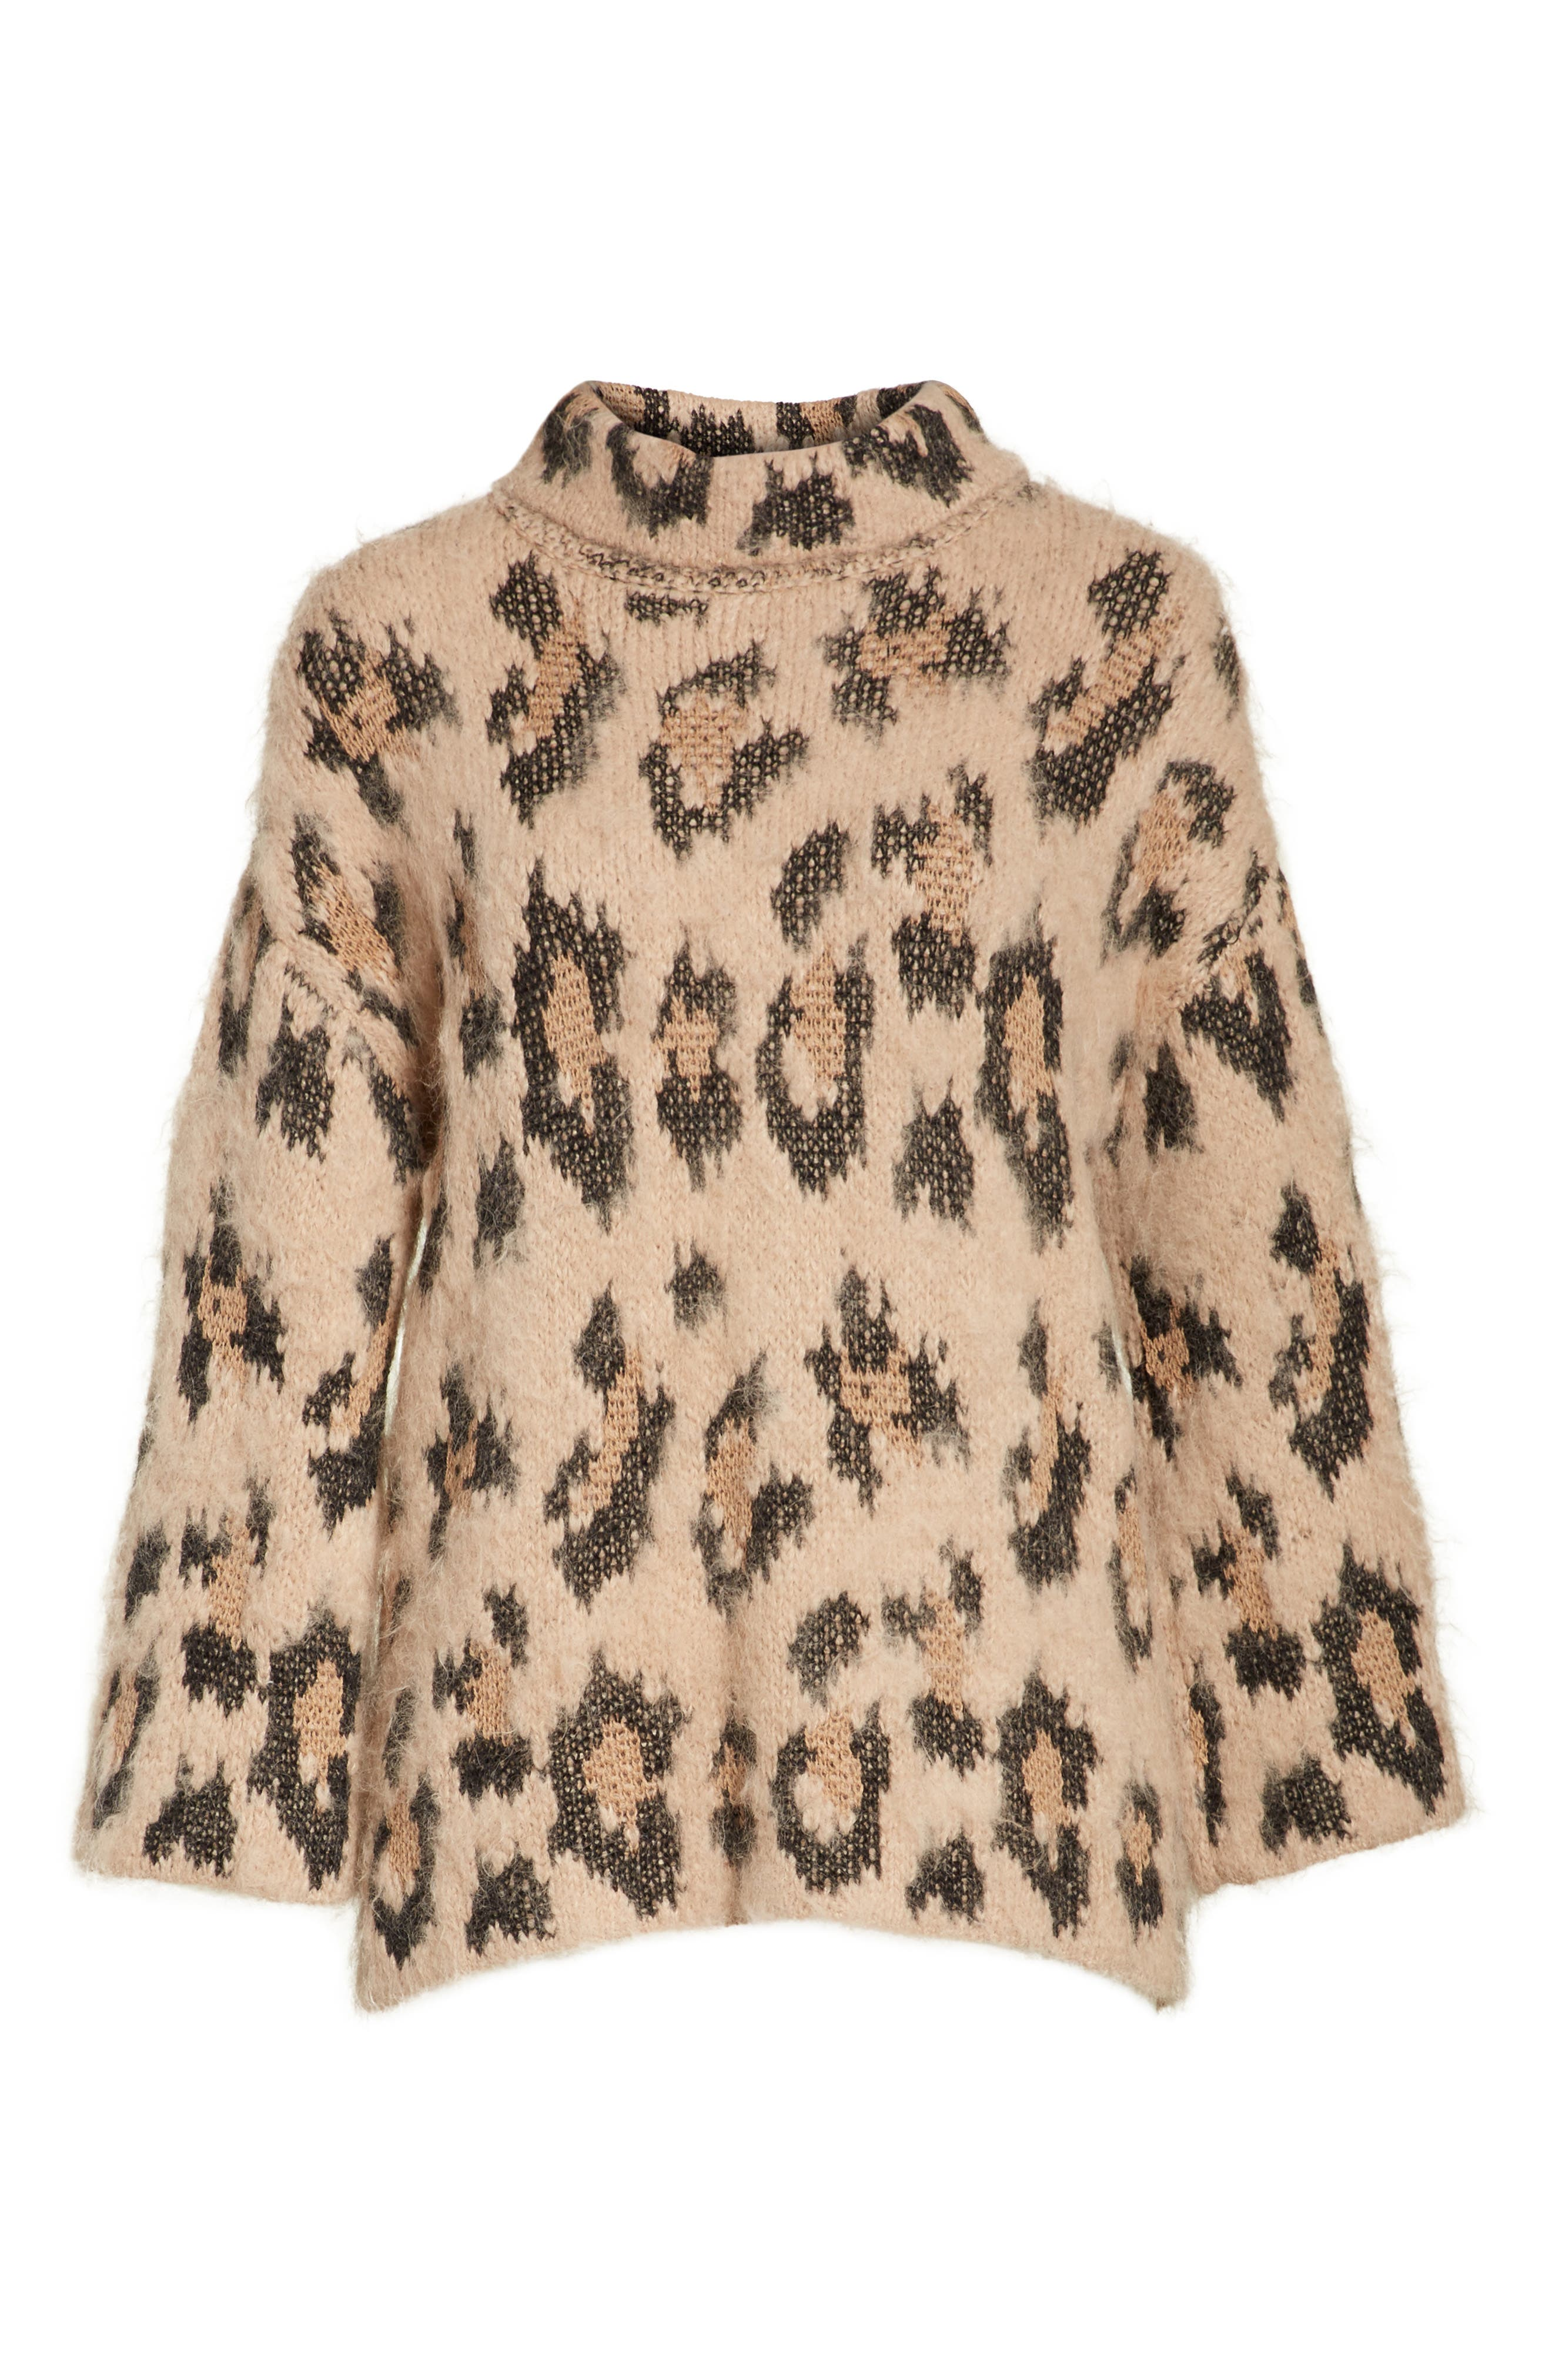 leopard print chunky sweater,                             Alternate thumbnail 6, color,                             206